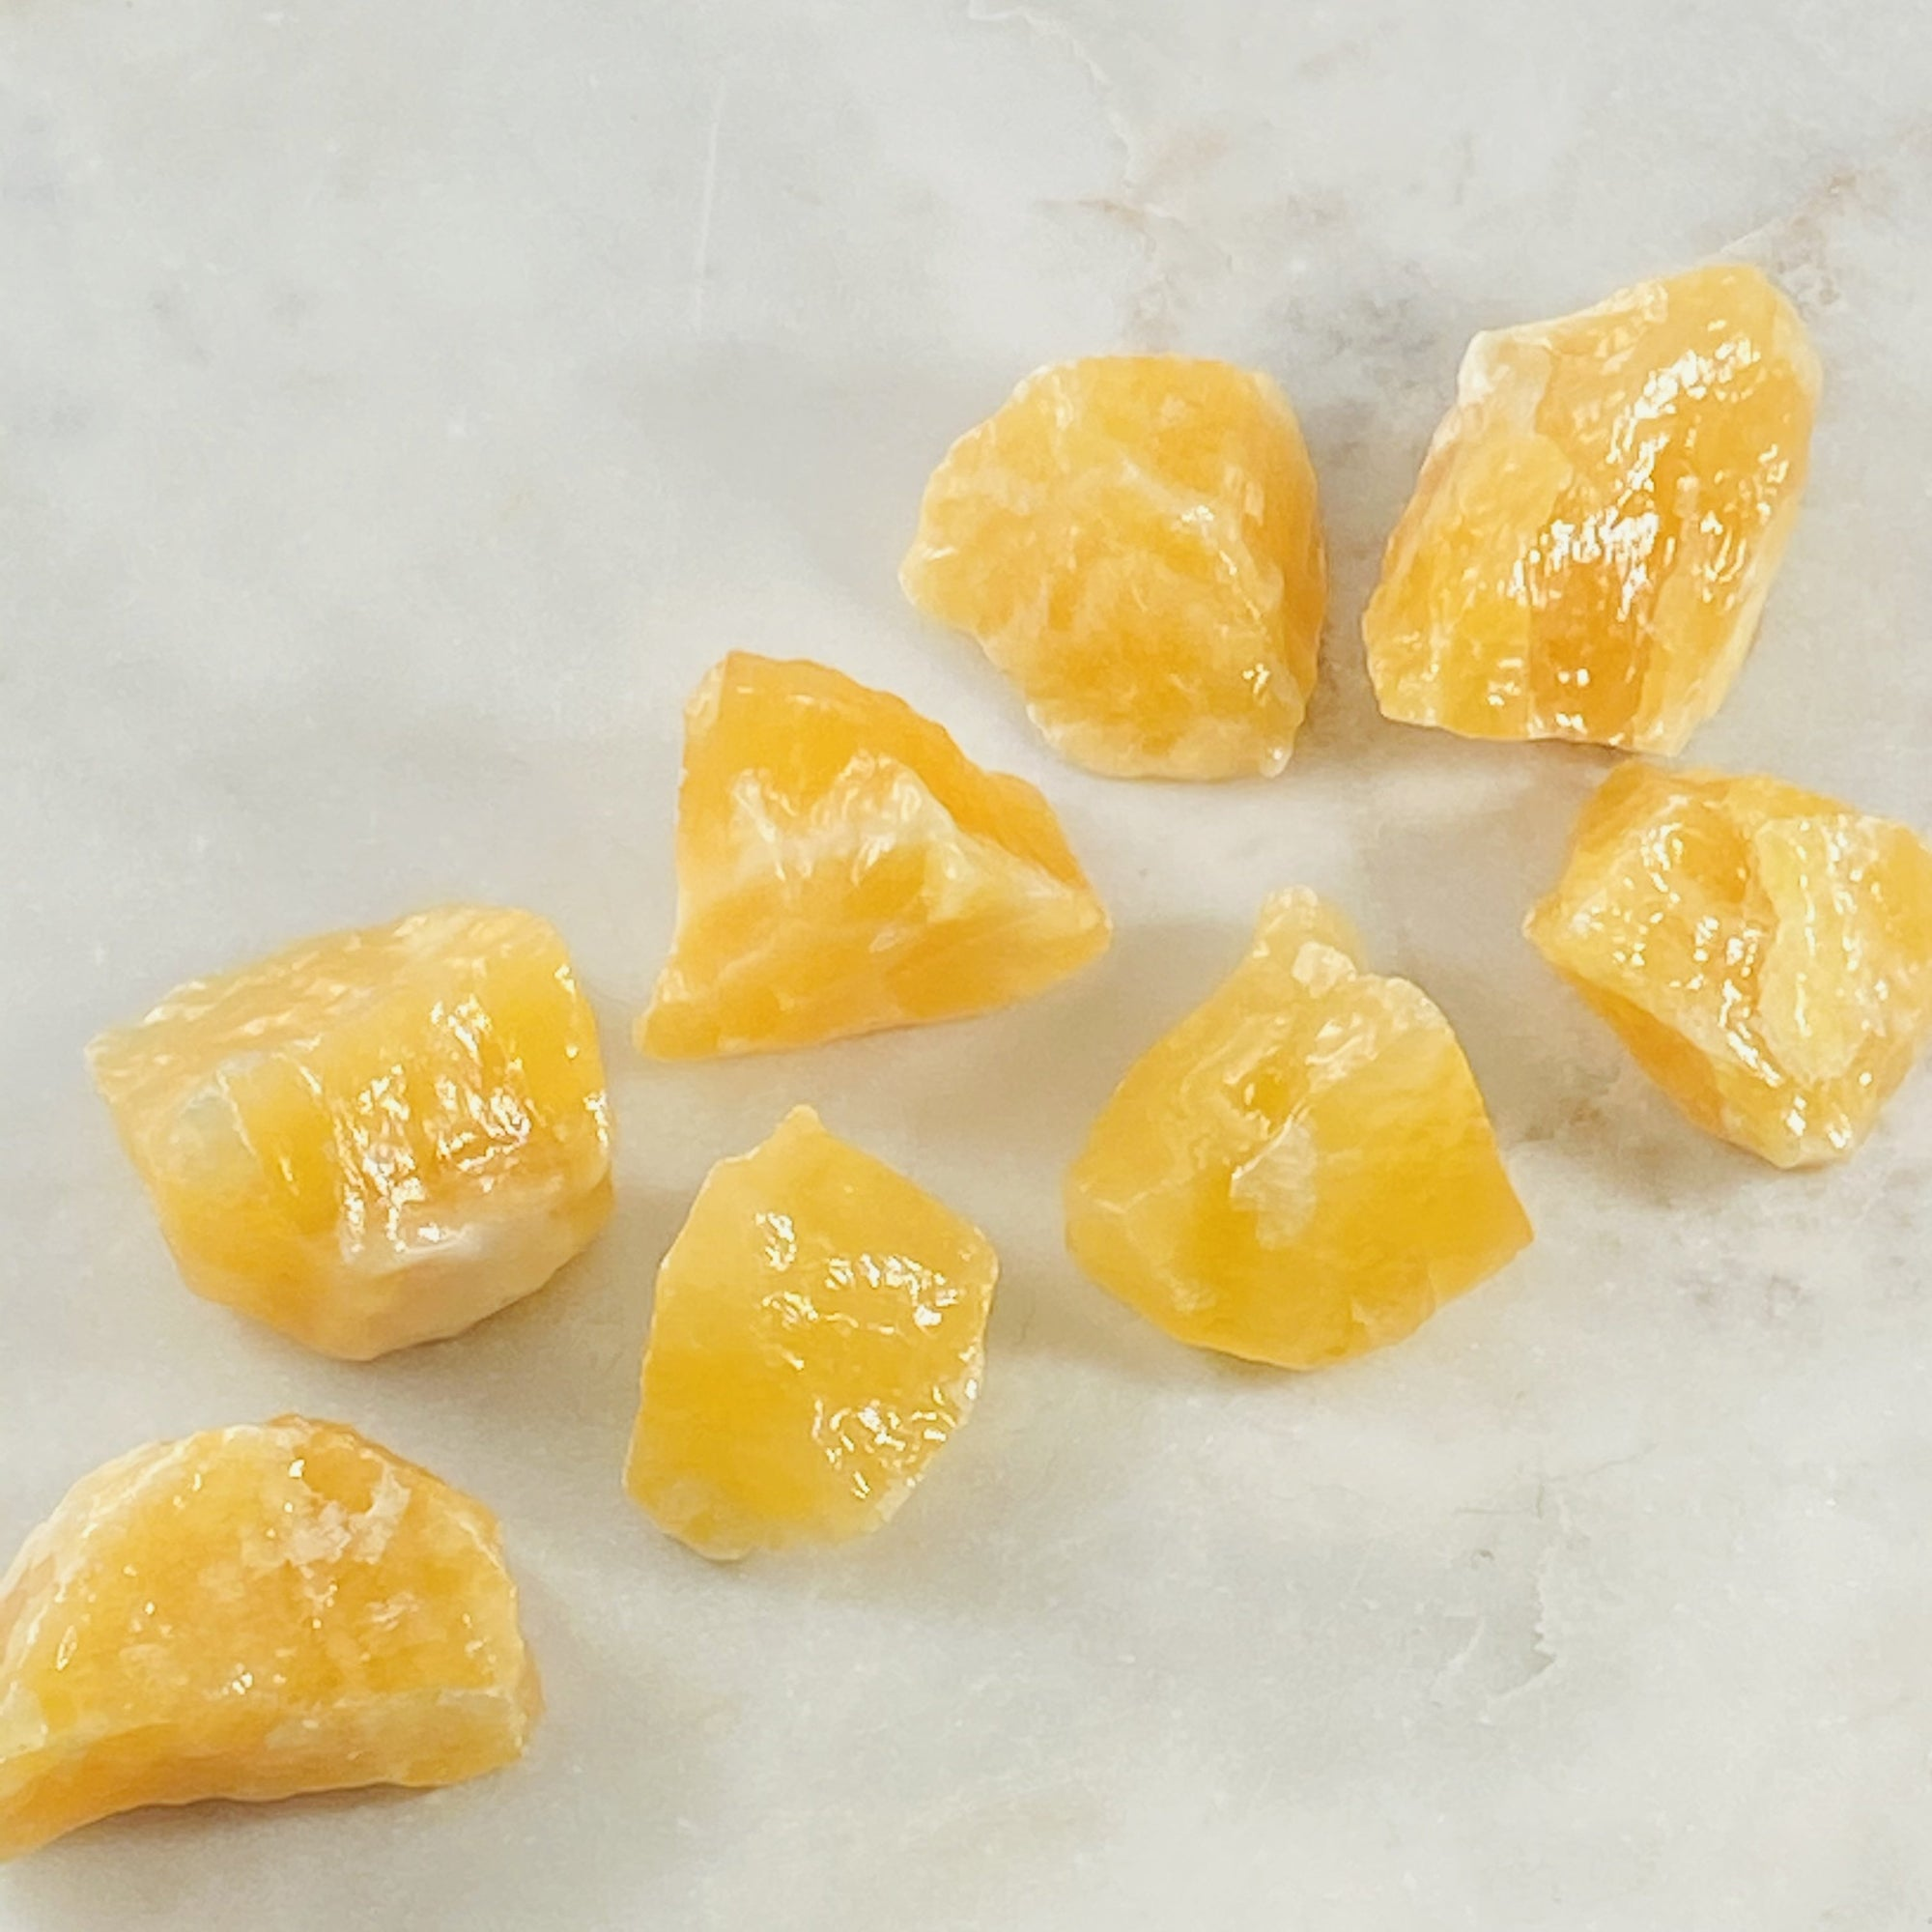 Orange calcite for creativity